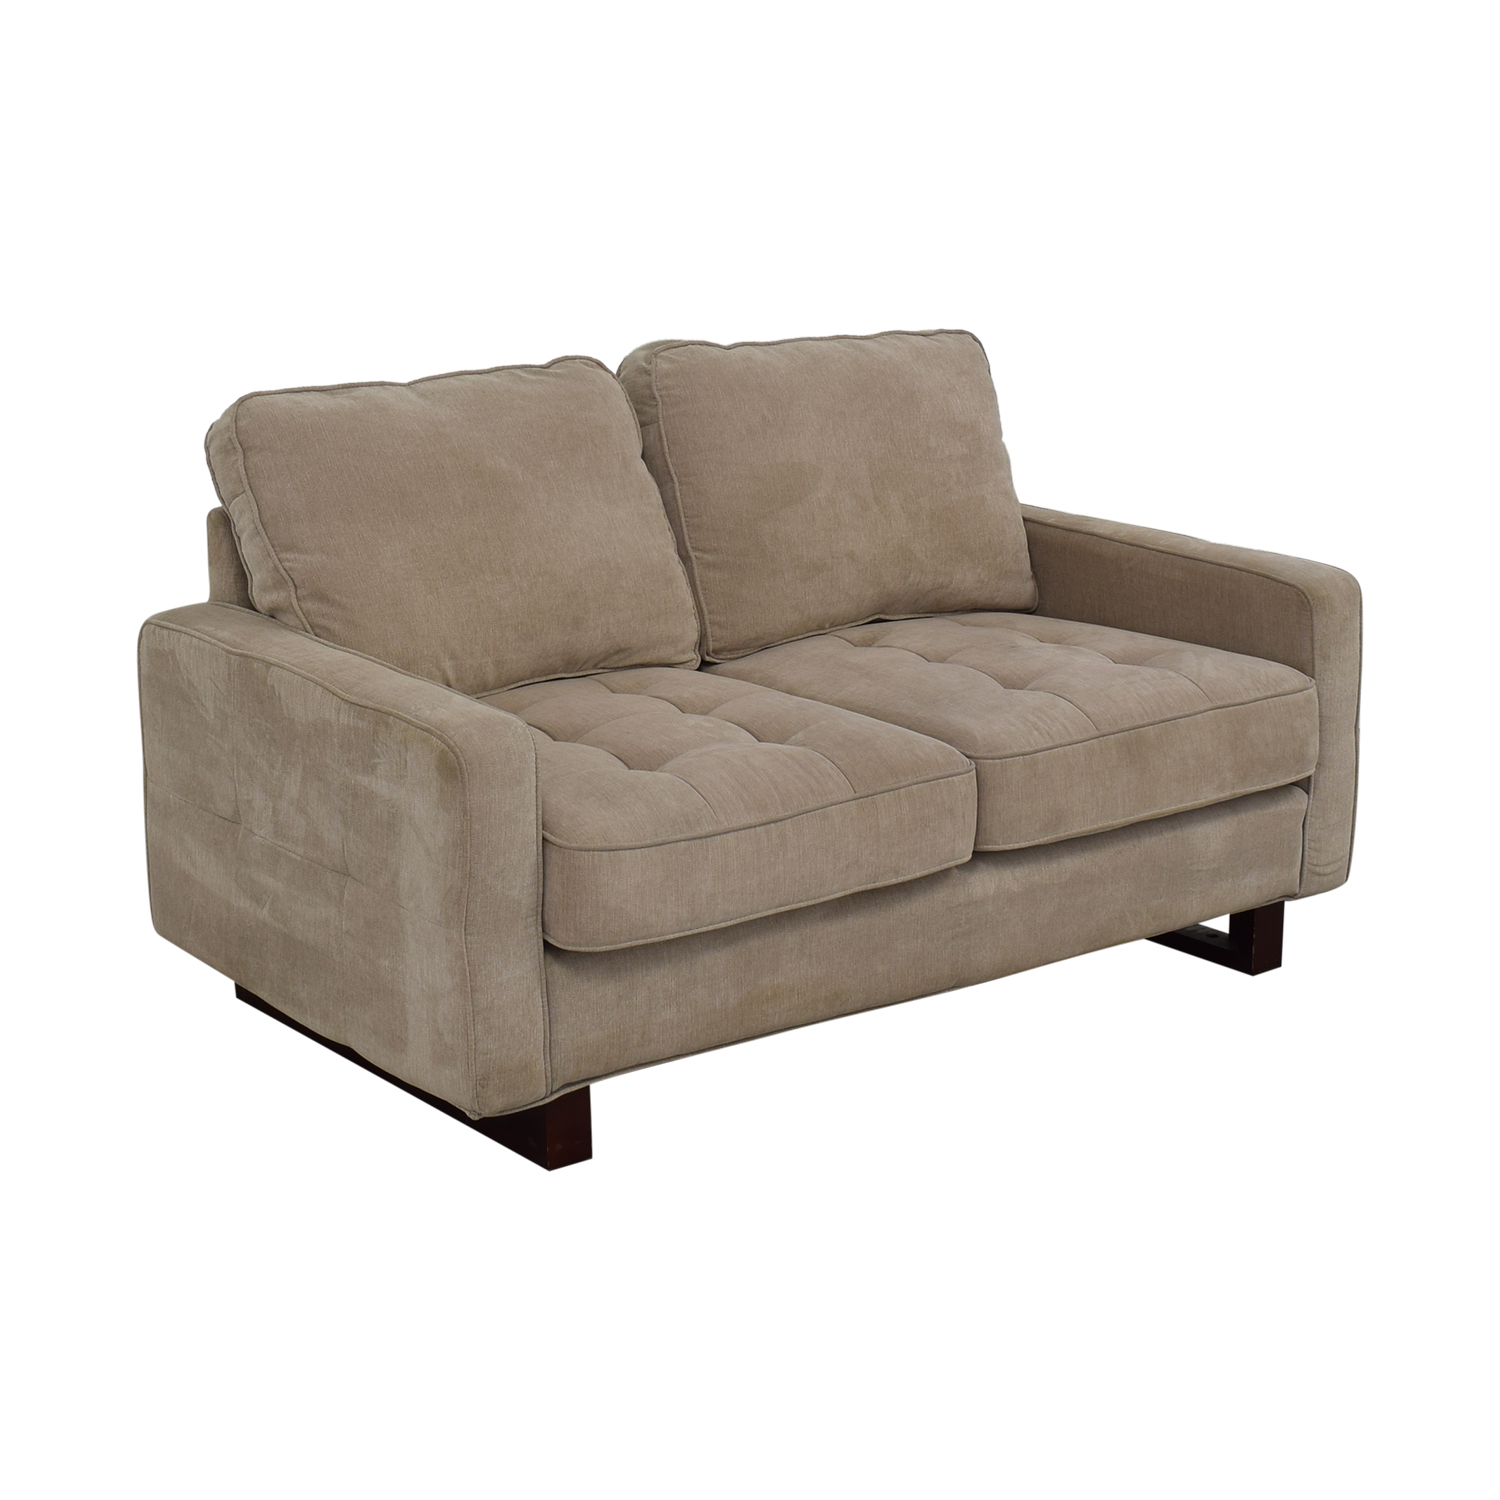 buy West Elm West Elm Beige Two Cushion Loveseat online